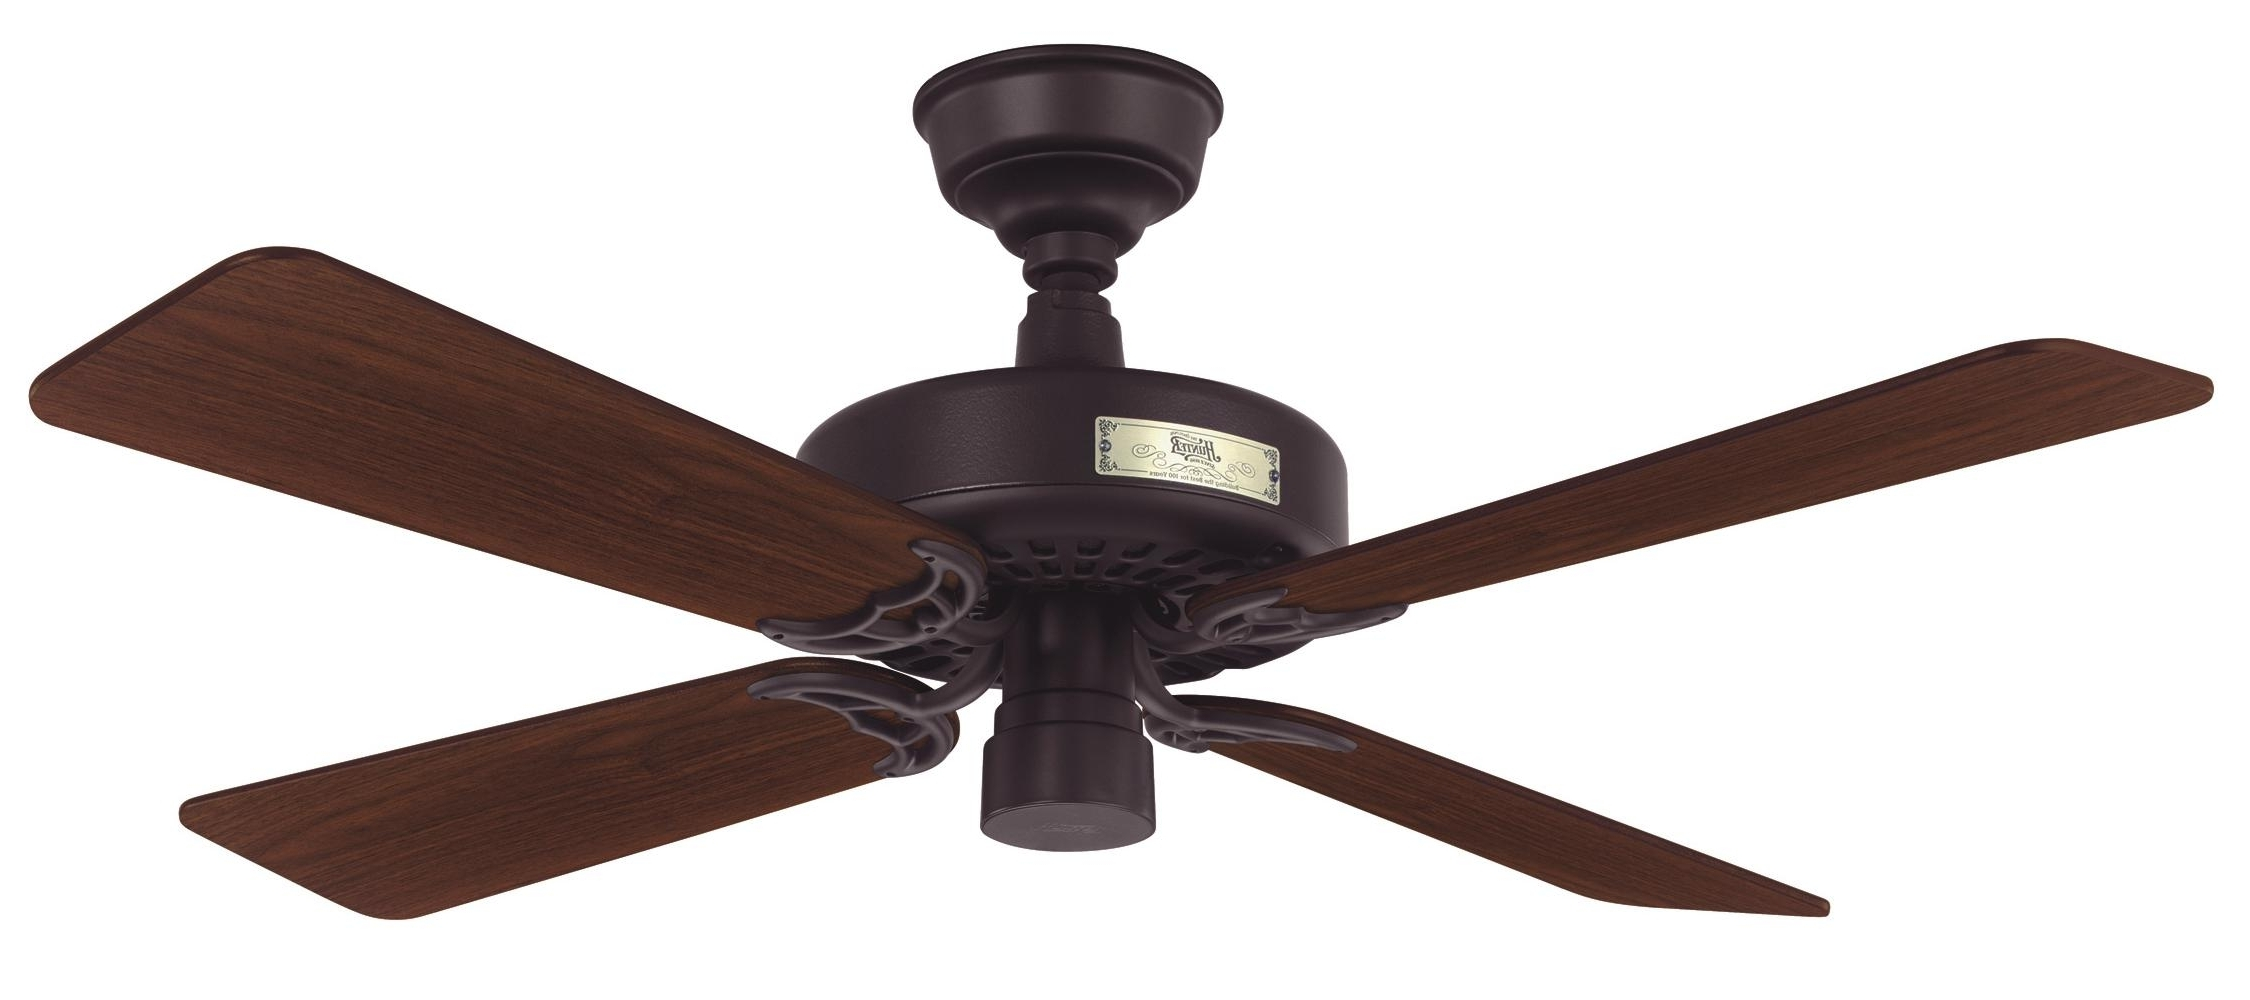 Harbor Breeze Ceiling Fan Light Not With Well Known Lowes Outdoor Ceiling Fans With Lights (View 5 of 20)